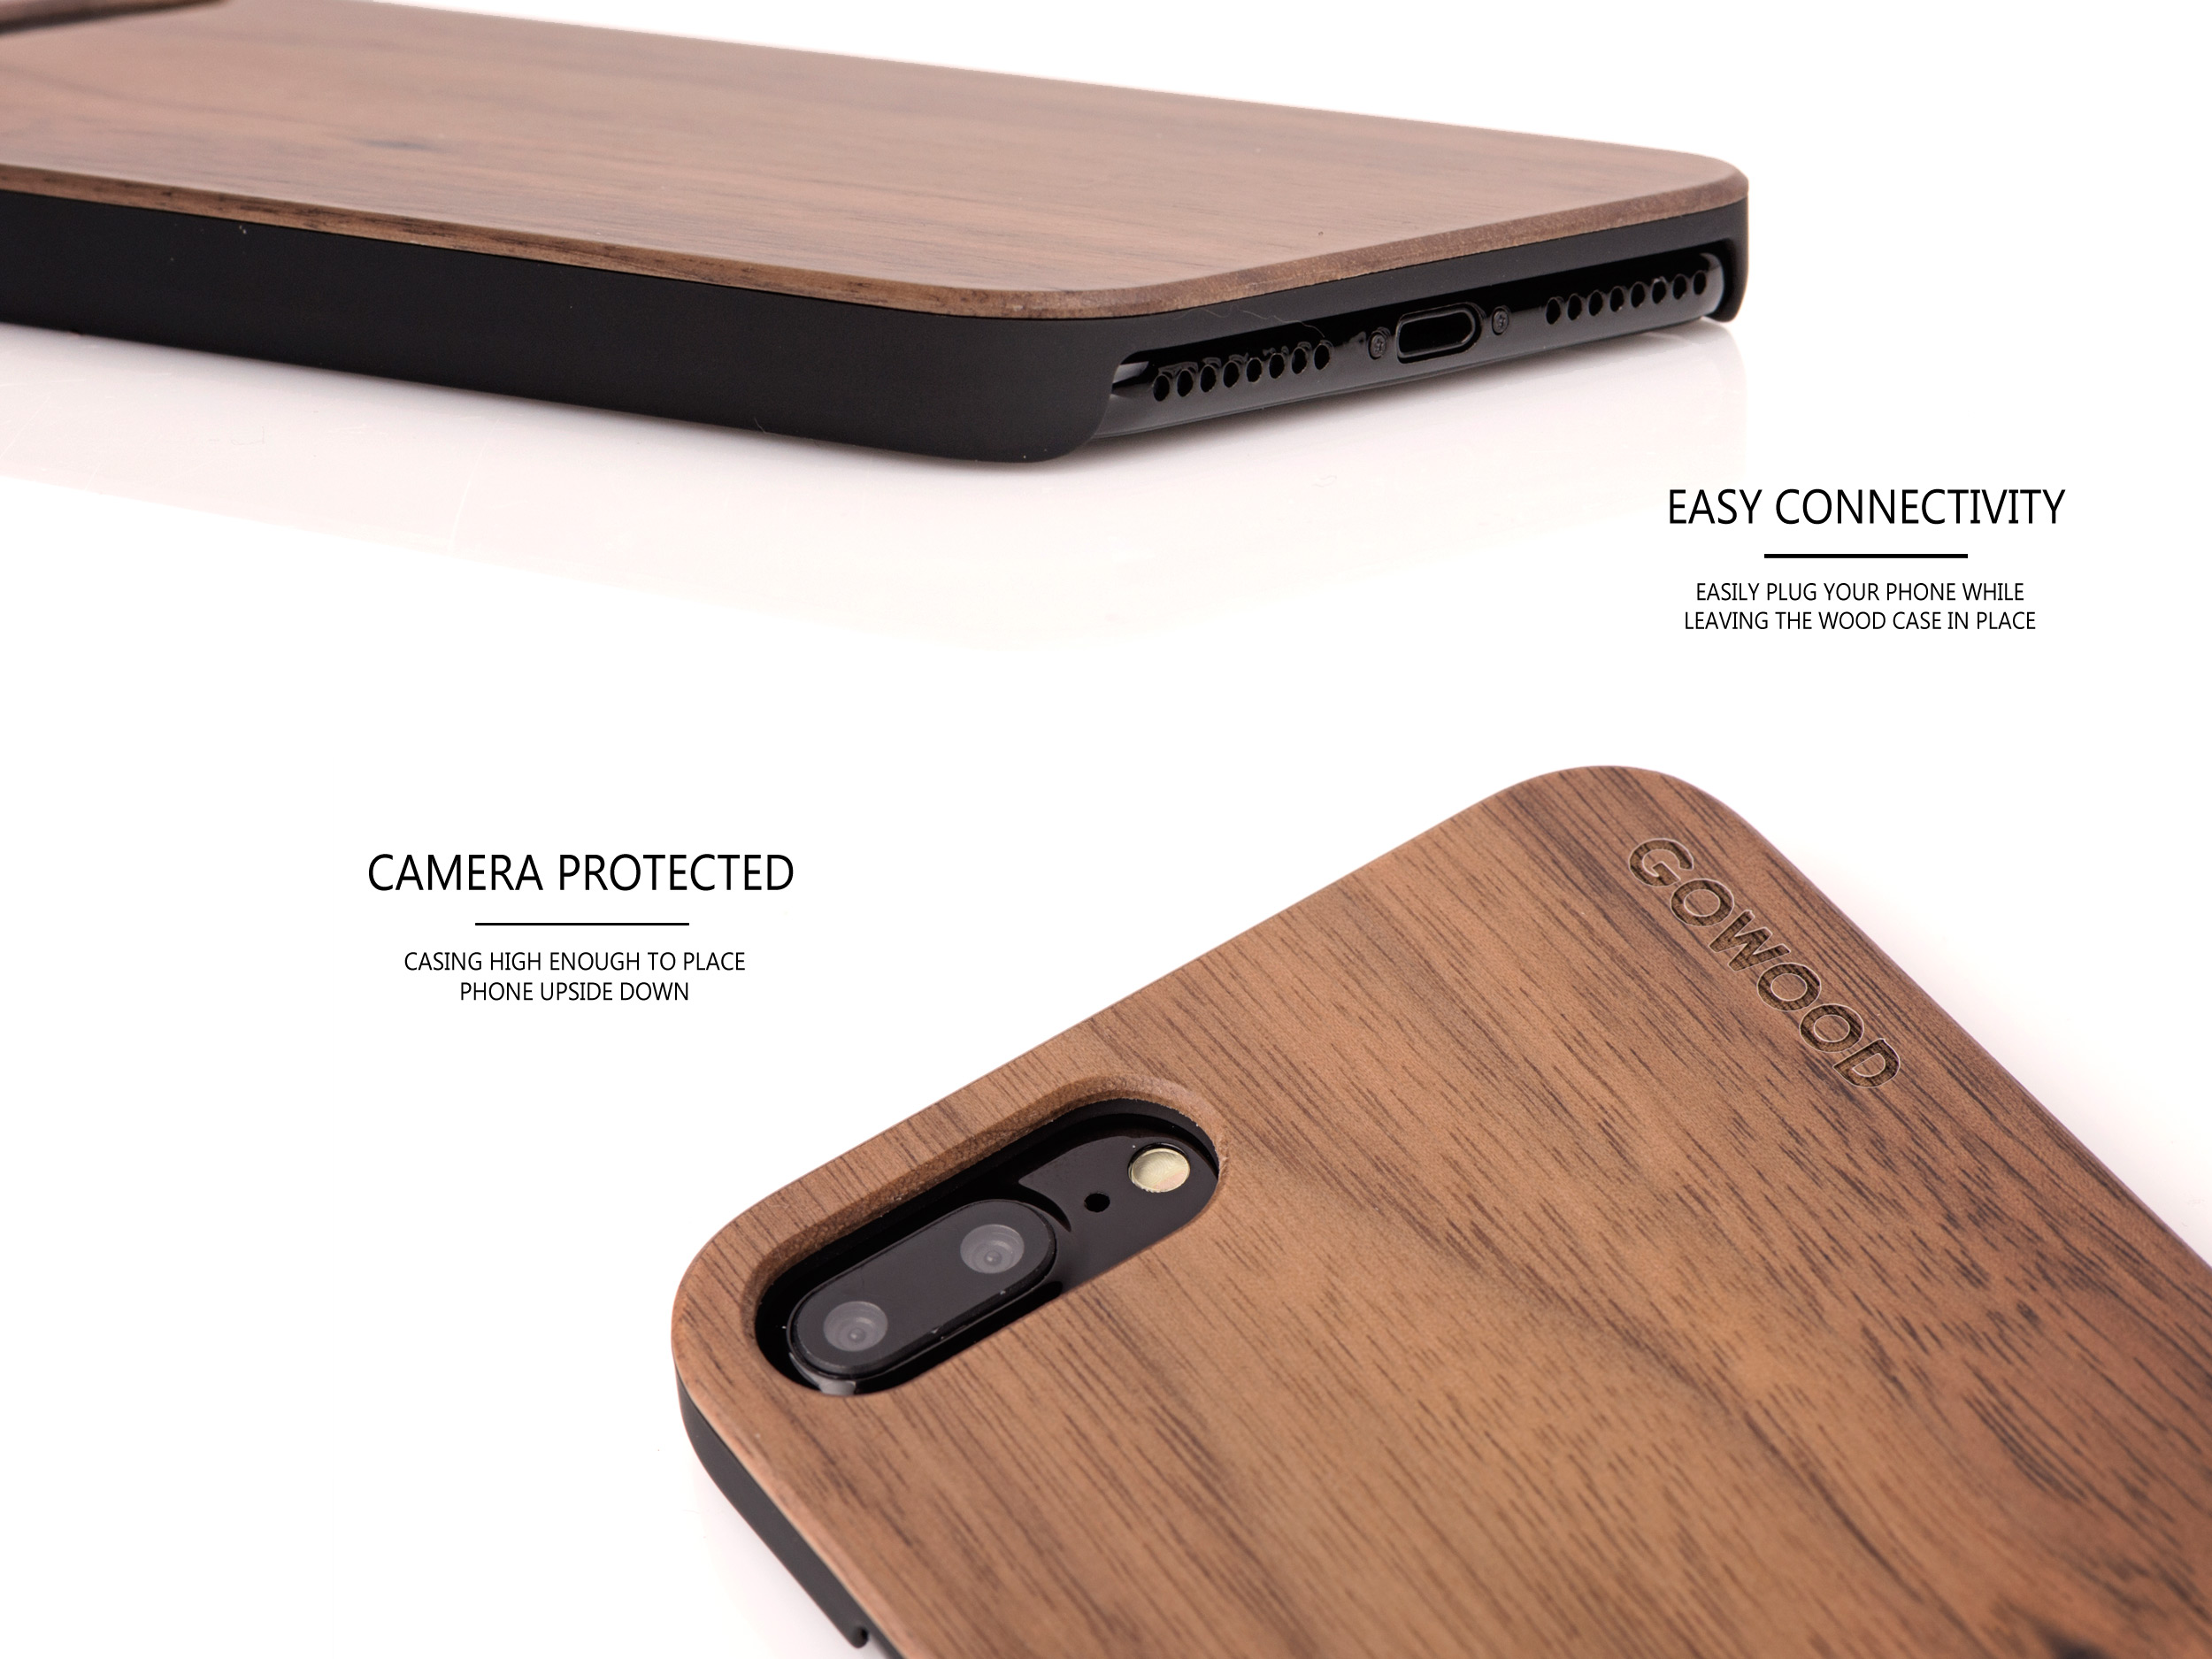 iPhone 7 Plus and 8 Plus wood case walnut - camera